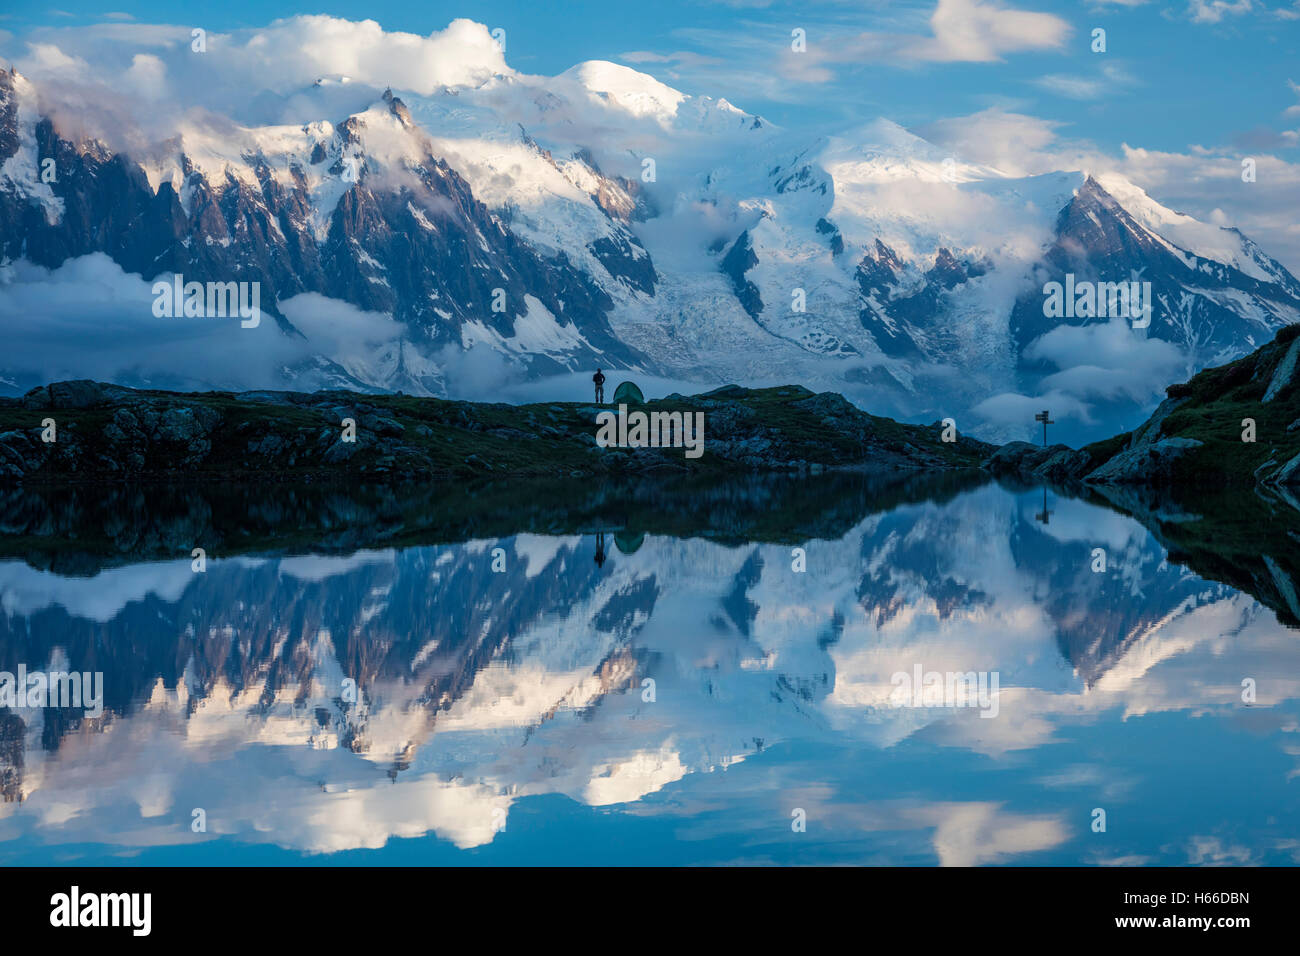 Hikers and the Mont Blanc massif reflected in Lac des Cheserys. Chamonix Valley, French Alps, France. Stock Photo